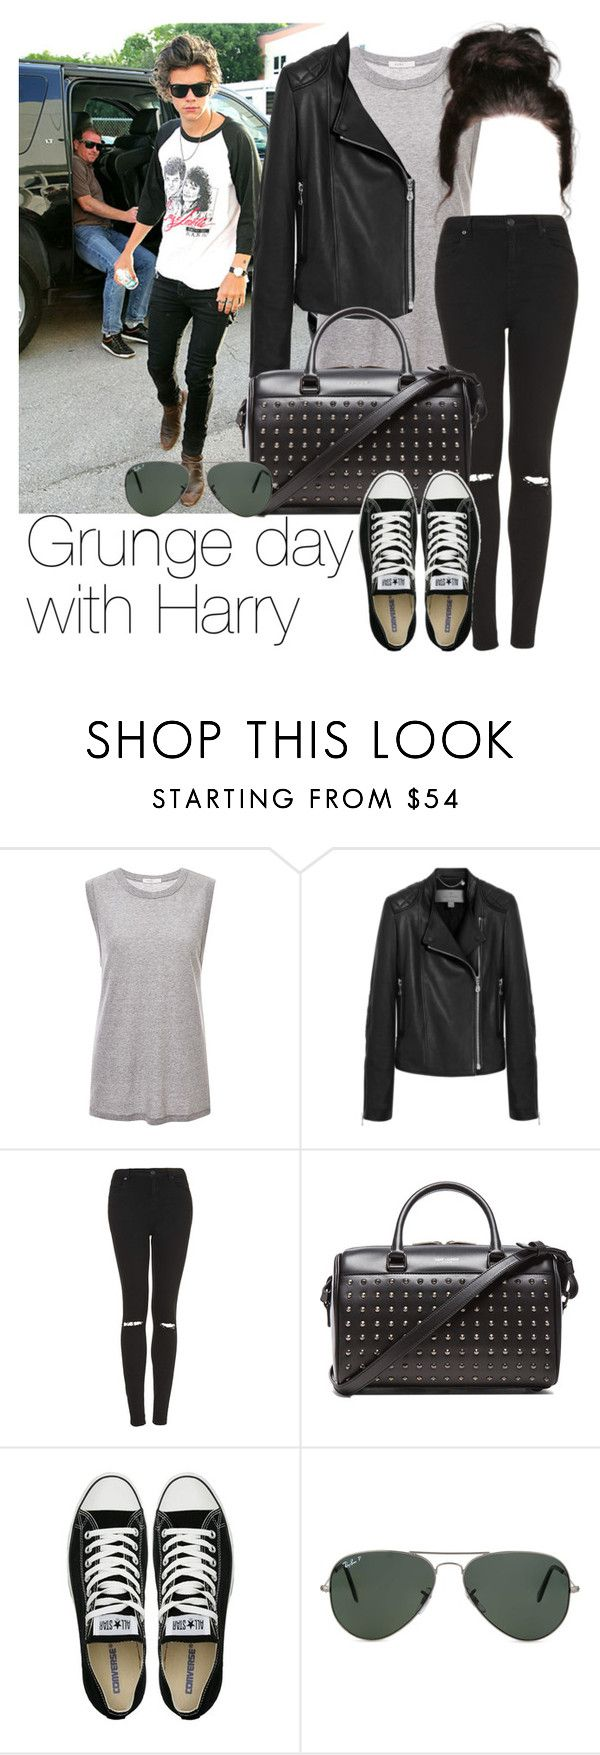 """""""REQUESTED: Grunge day with Harry"""" by style-with-one-direction ❤ liked on Polyvore featuring 6397, Mulberry, Topshop, Yves Saint Laurent, Converse, Ray-Ban, OneDirection, harrystyles, 1d and harry styles one direction 1d"""